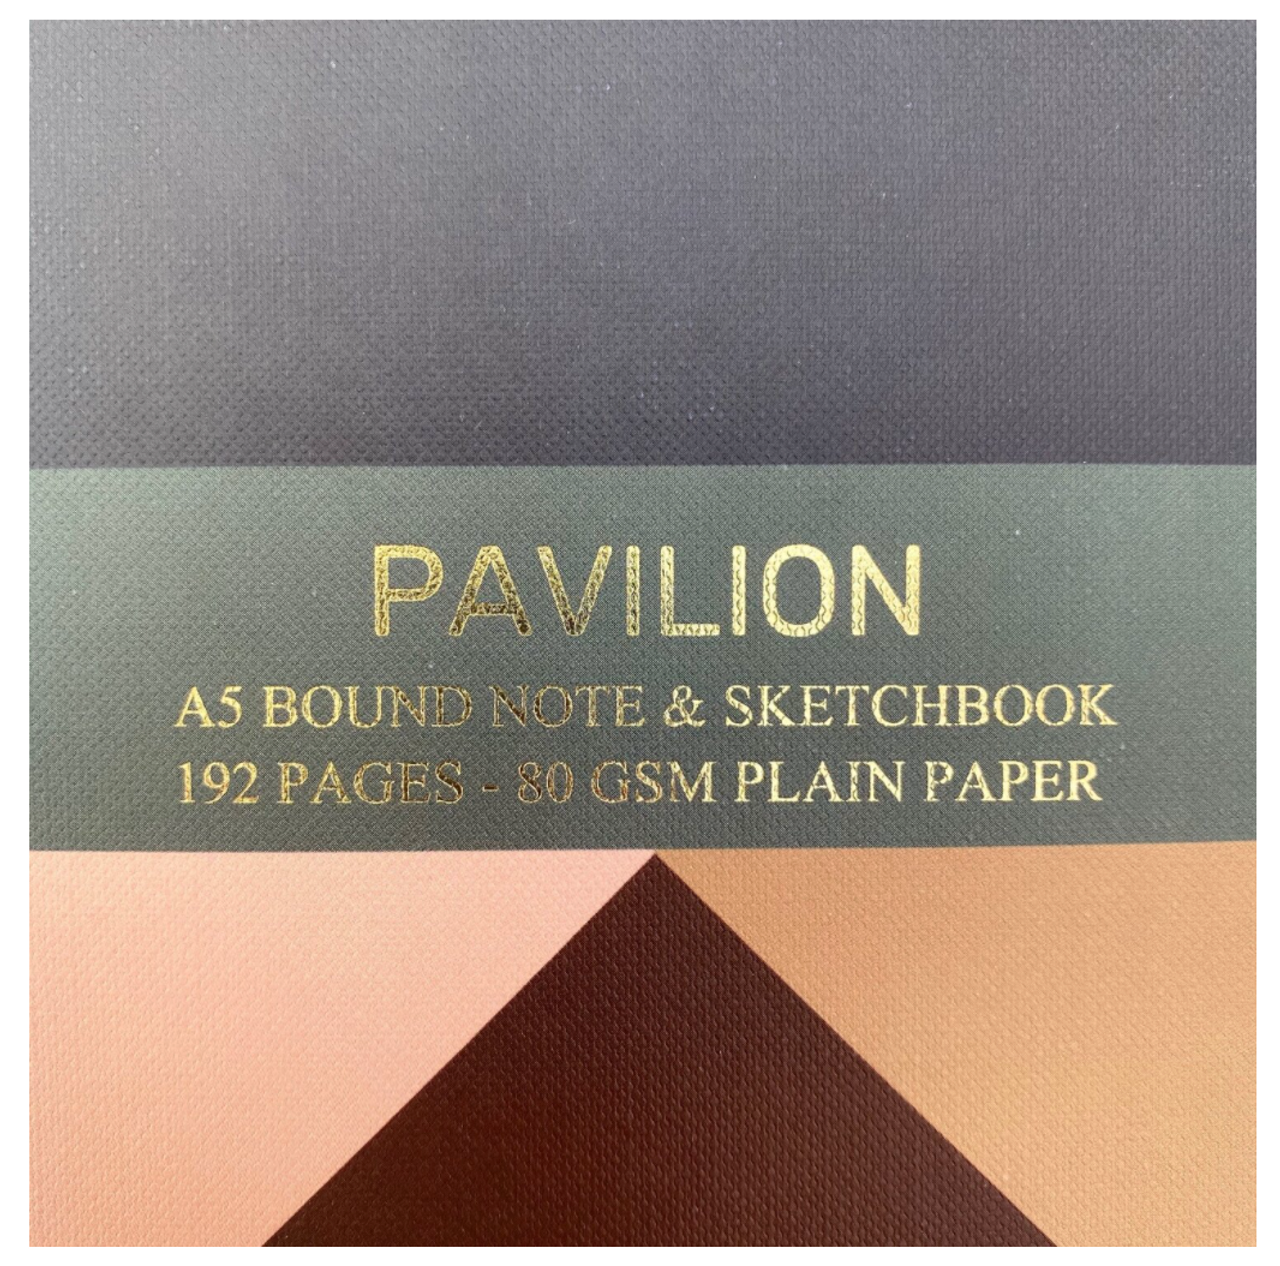 Pavilion A5 buckram embossed notebook, embossing